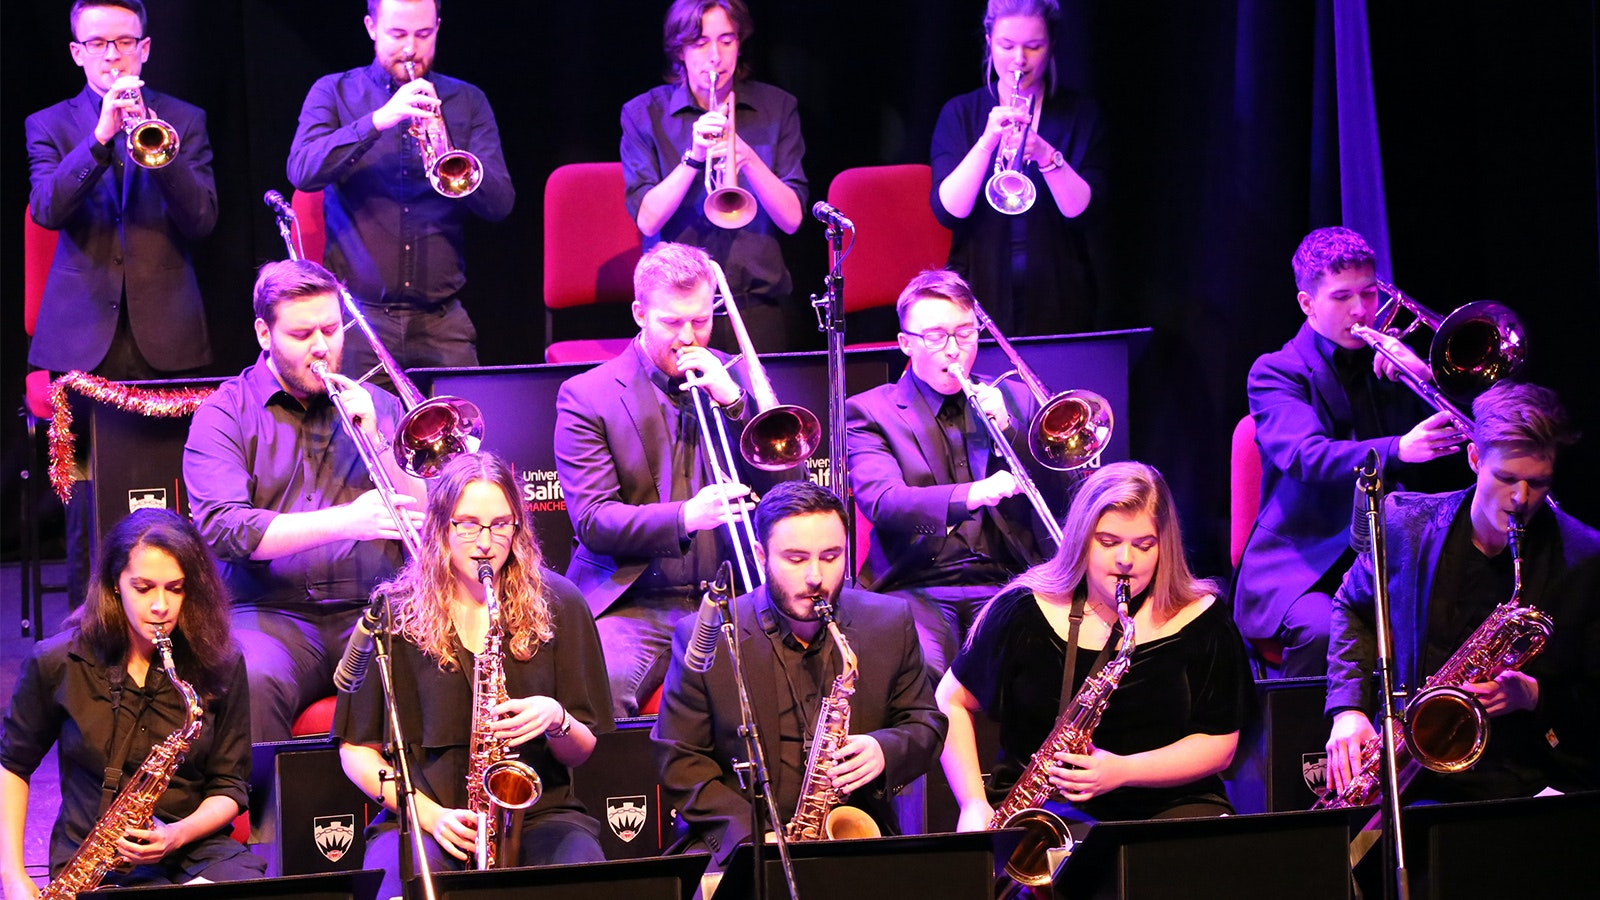 University of Salford Big Band Concert